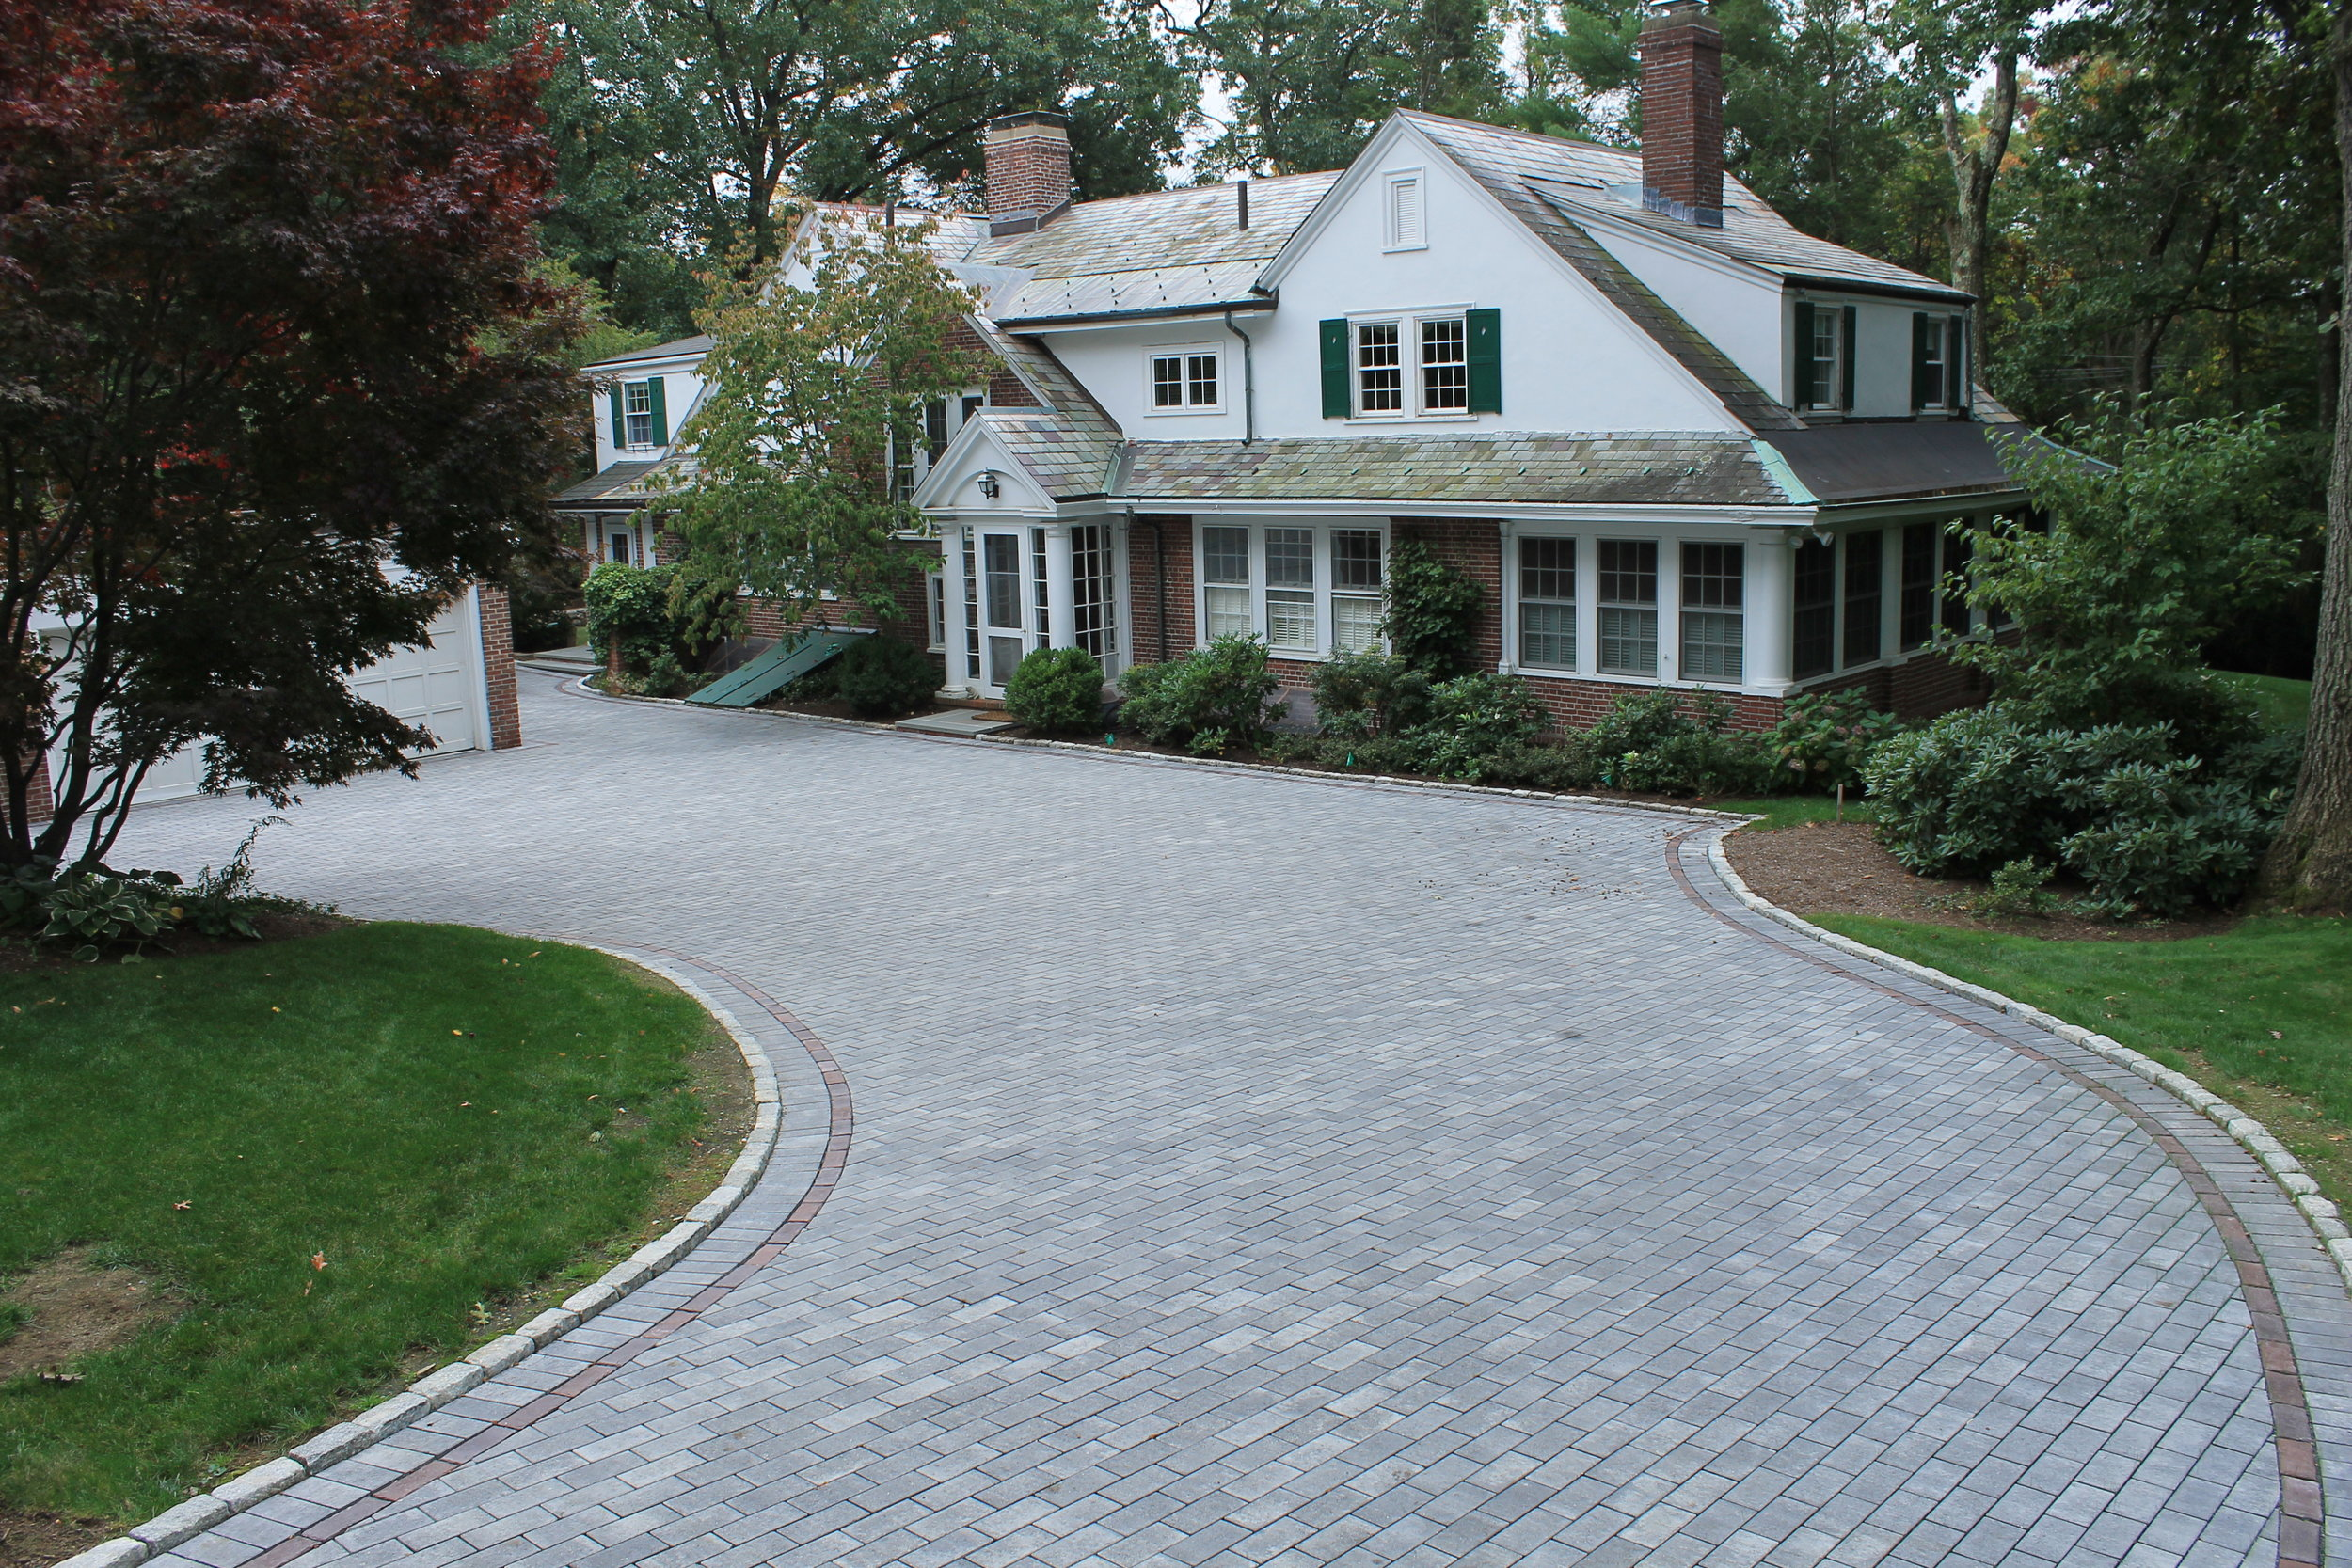 5 Things to Keep in Mind When Choosing Driveway Pavers in the Lexington, MA, Area